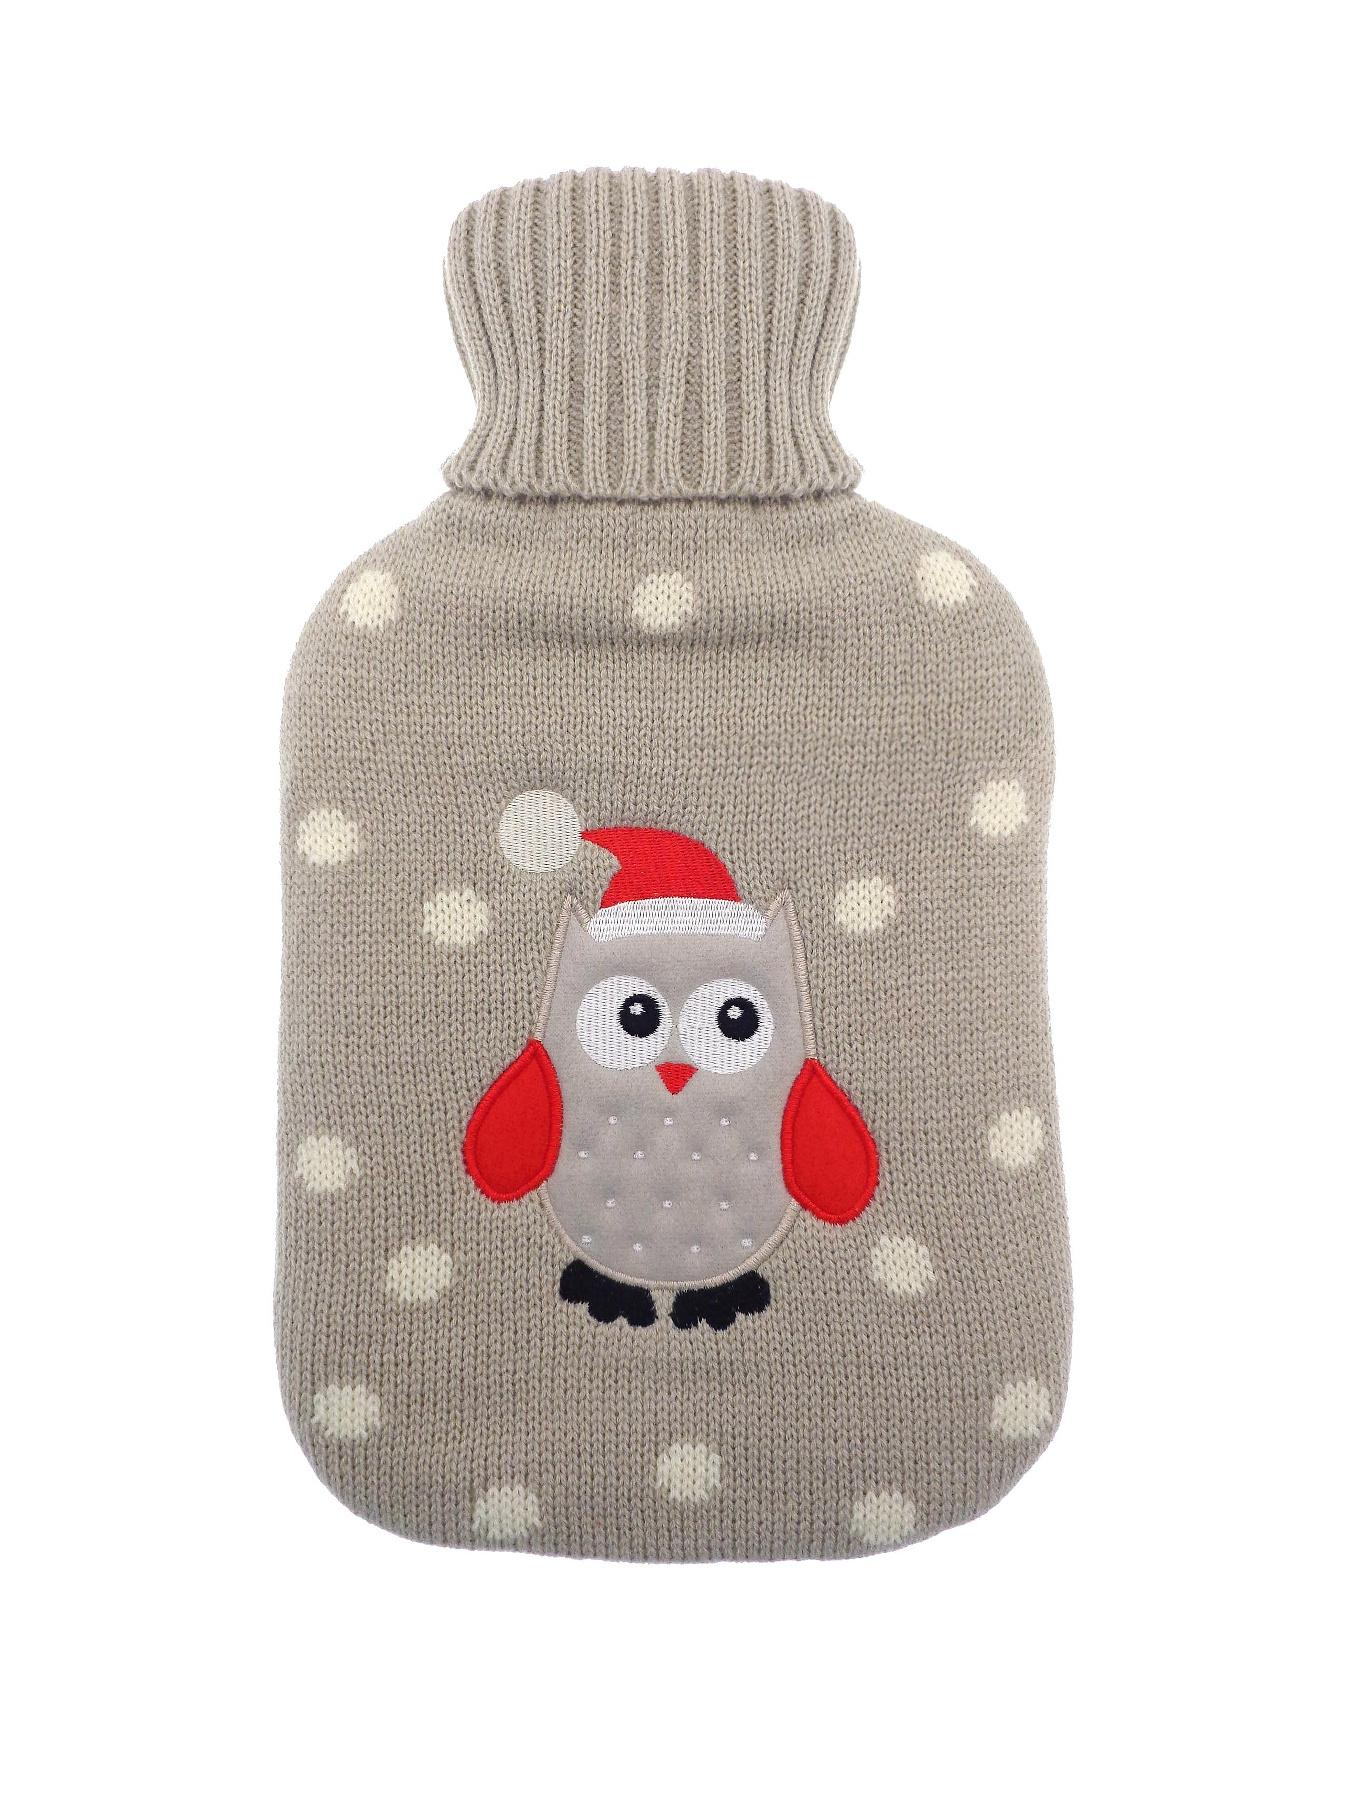 Owl Hot Water Bottle - Red